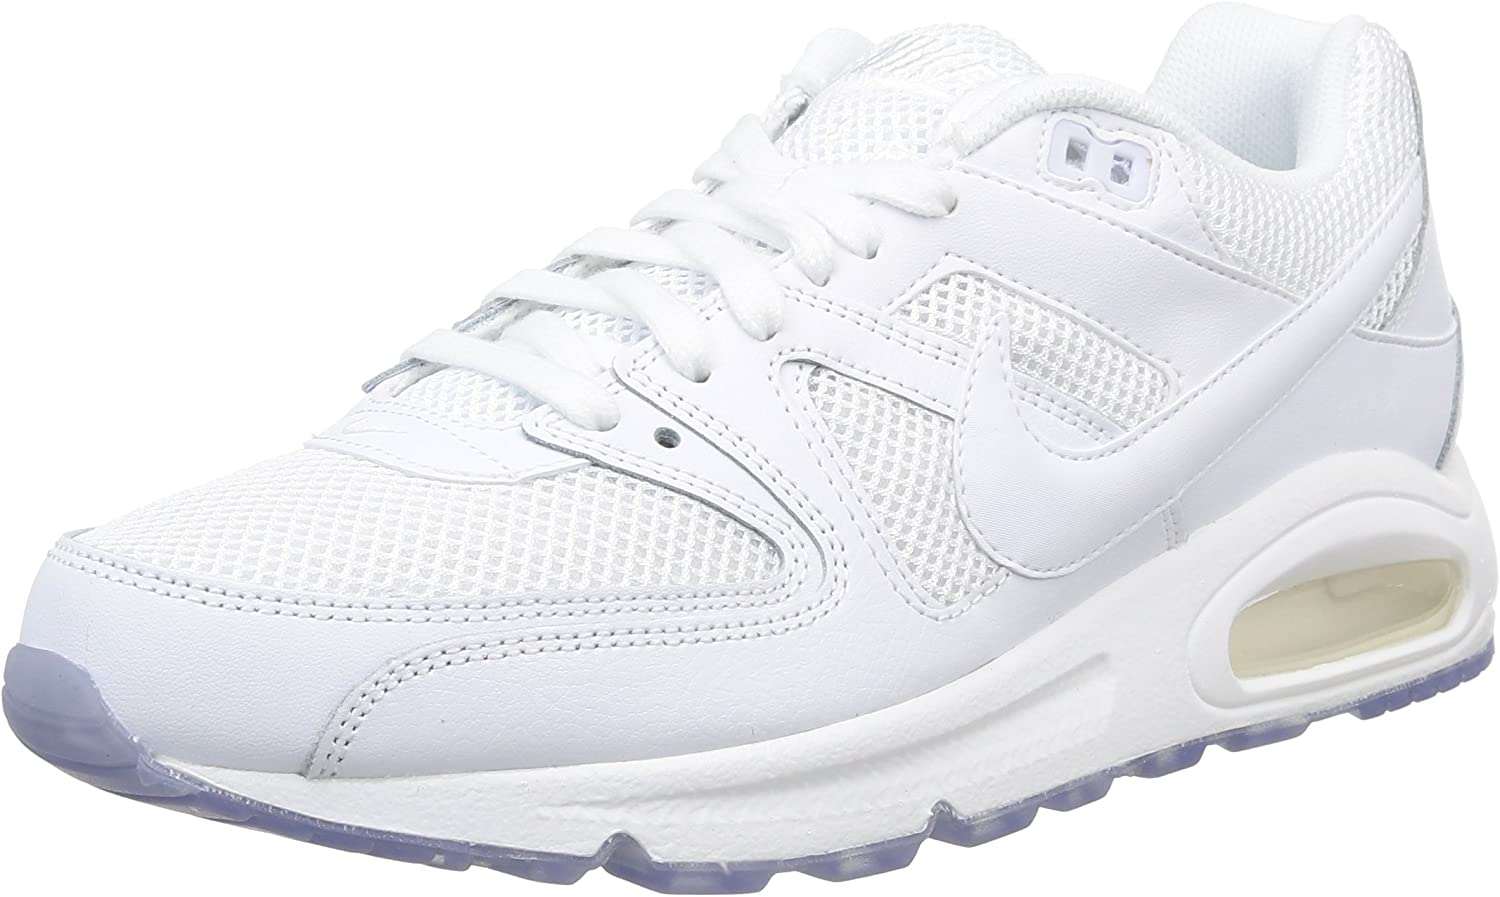 Nike Air Max Command, Baskets Mode Homme, Blanc (WhiteWhite